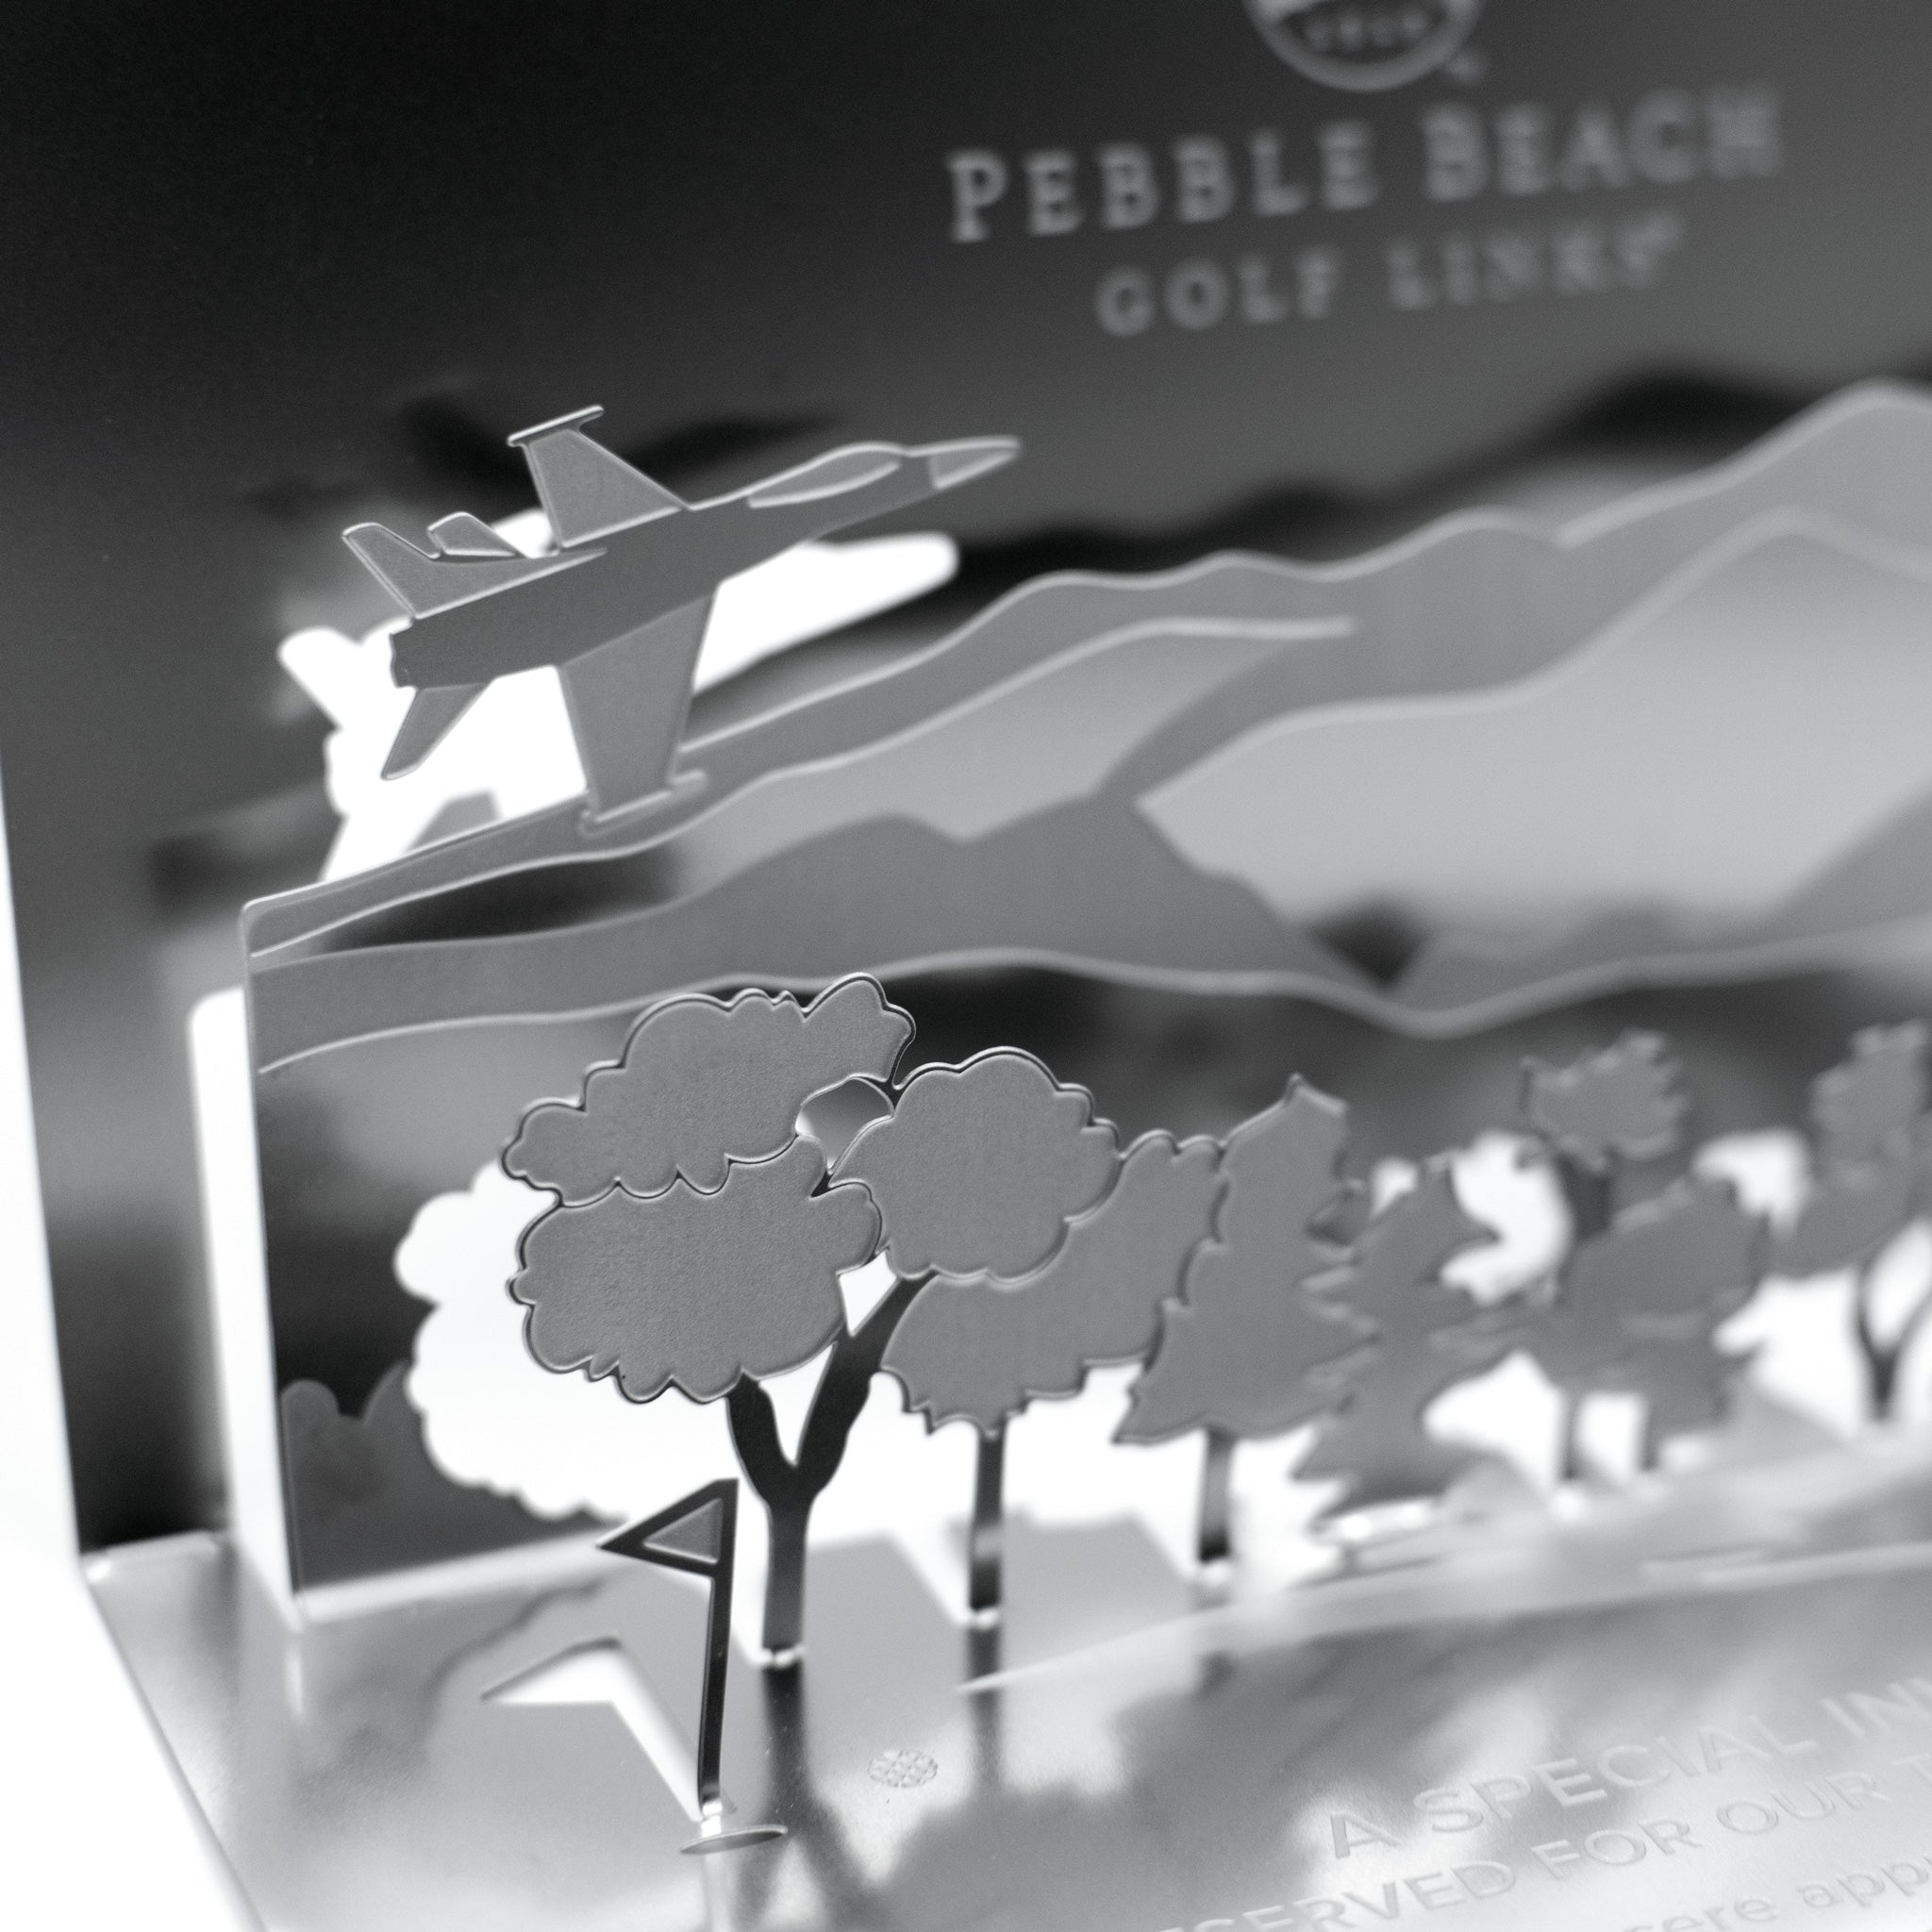 Pebble Beach Golf Metal Invitation Folded Detail2